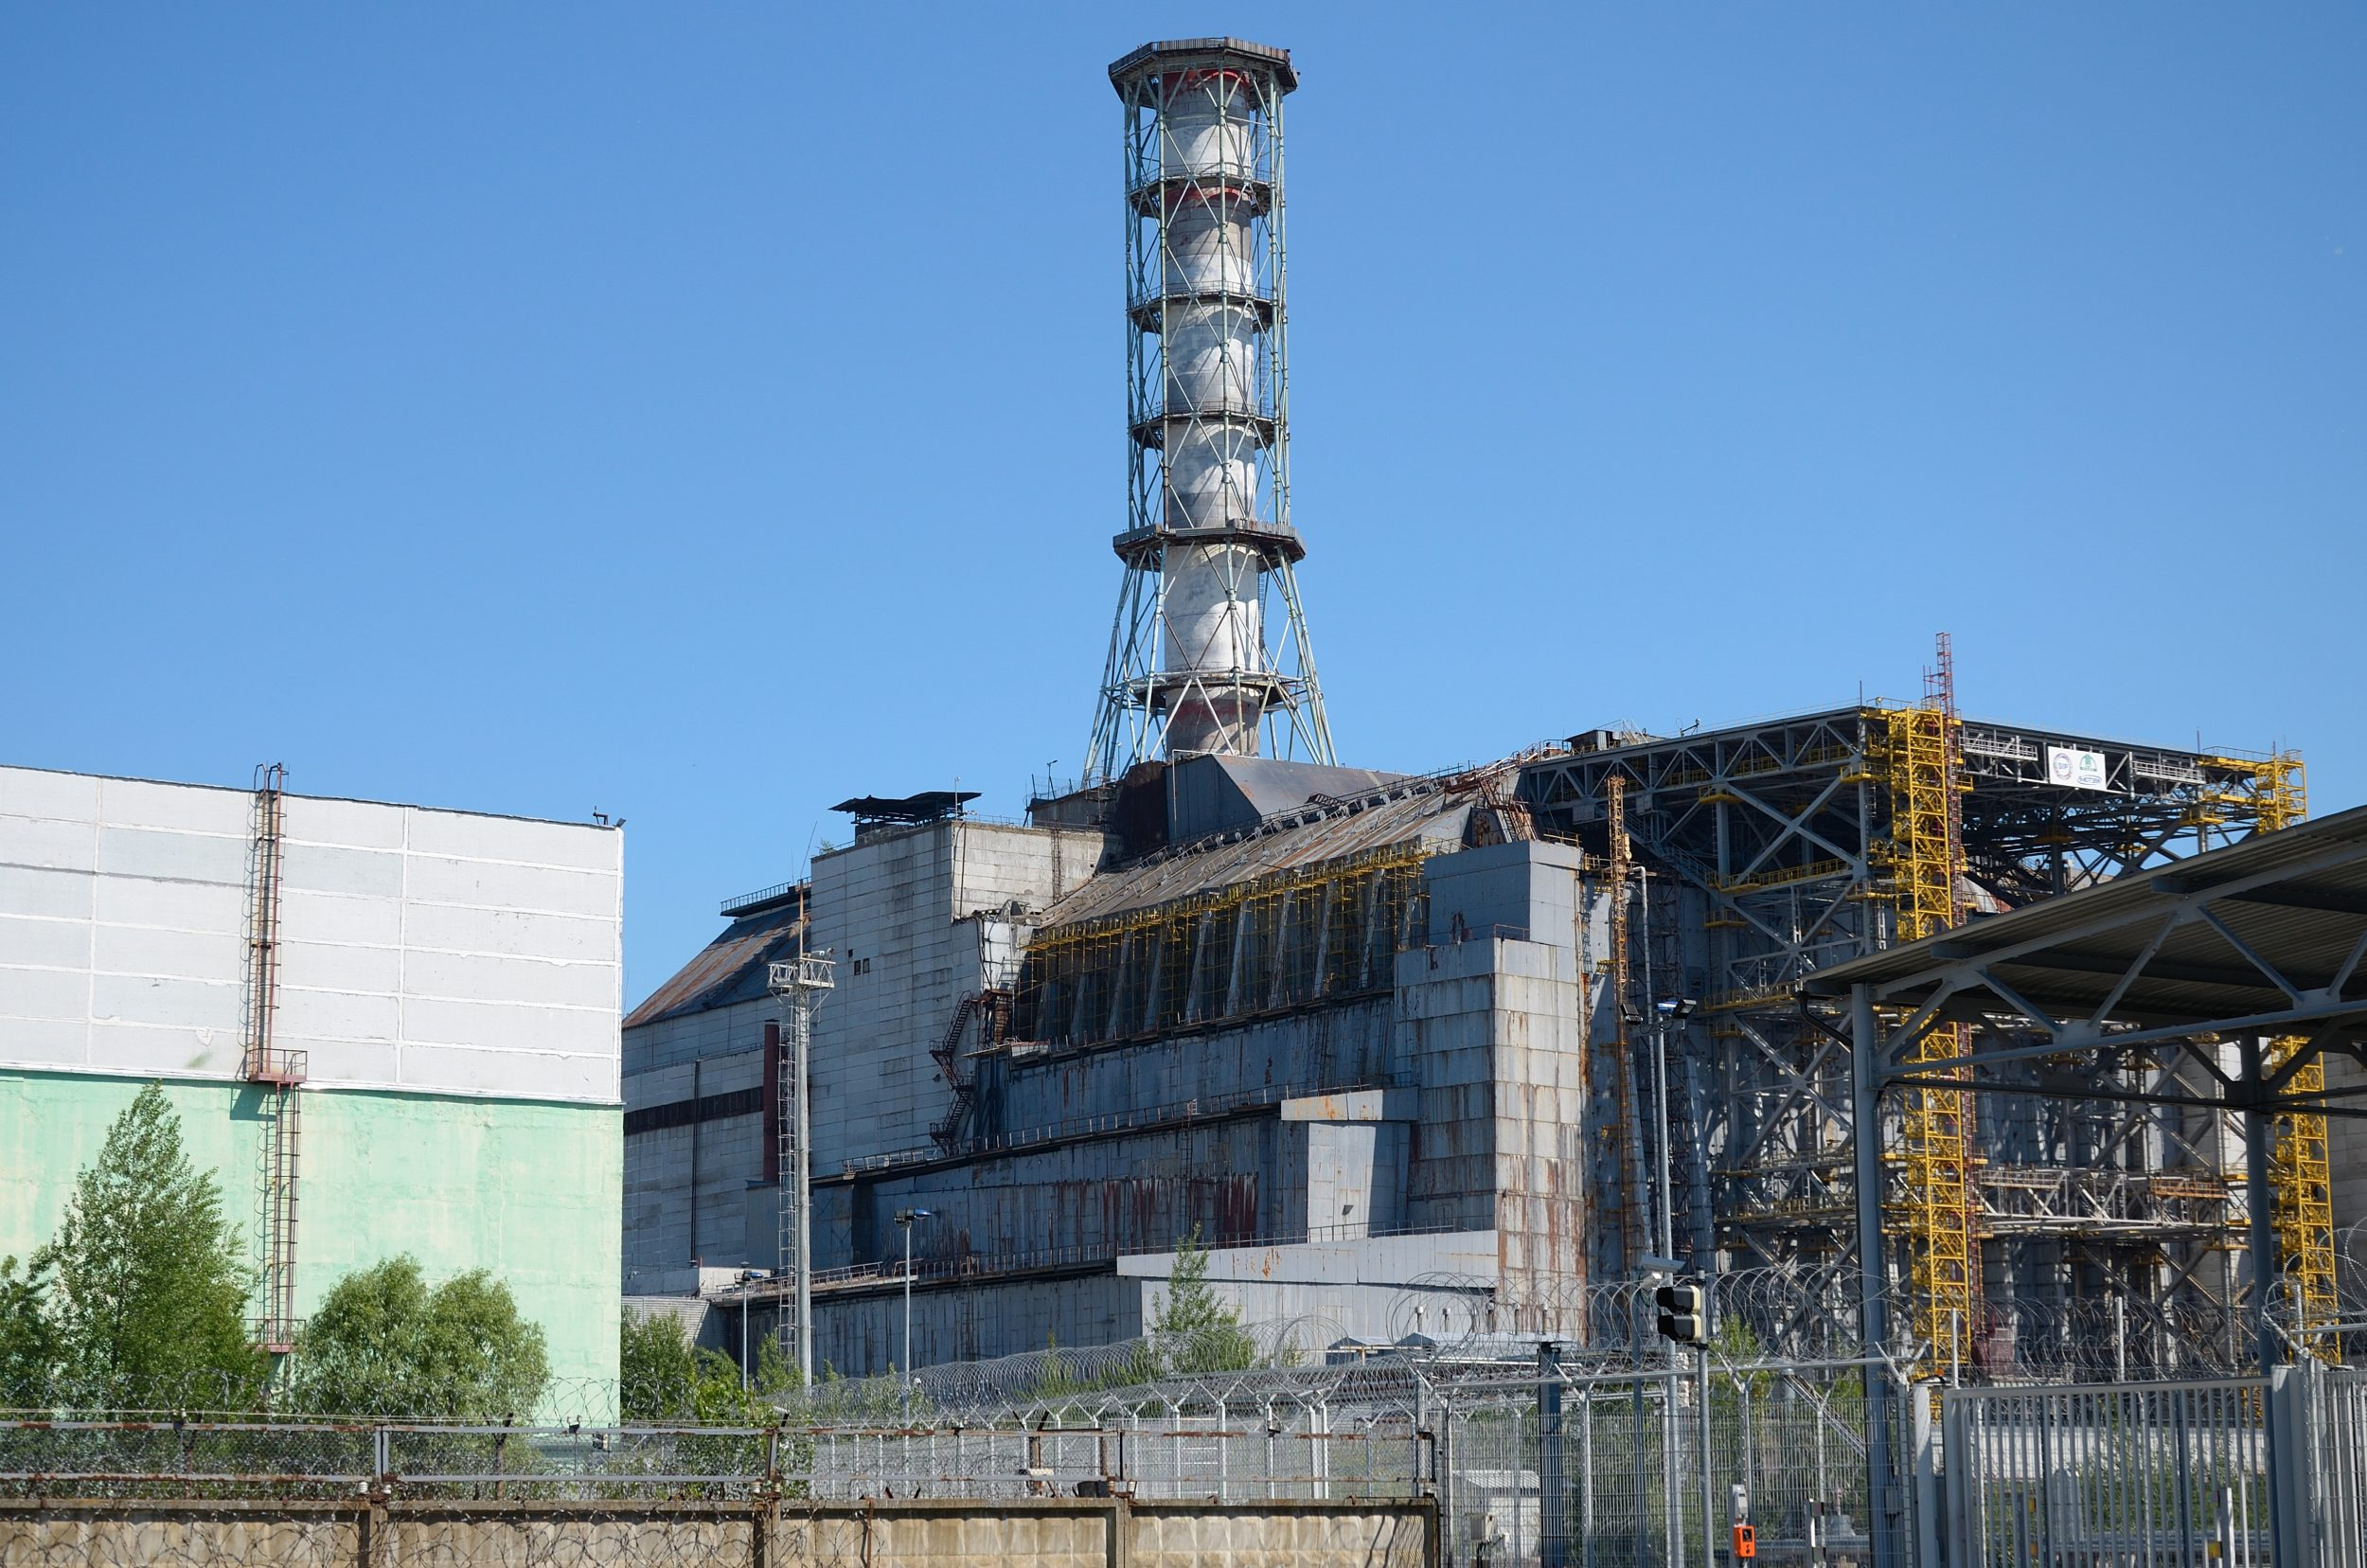 Chernobyl Nuclear Power Plant (Pic: Bkv7601/Wikimedia Commons)